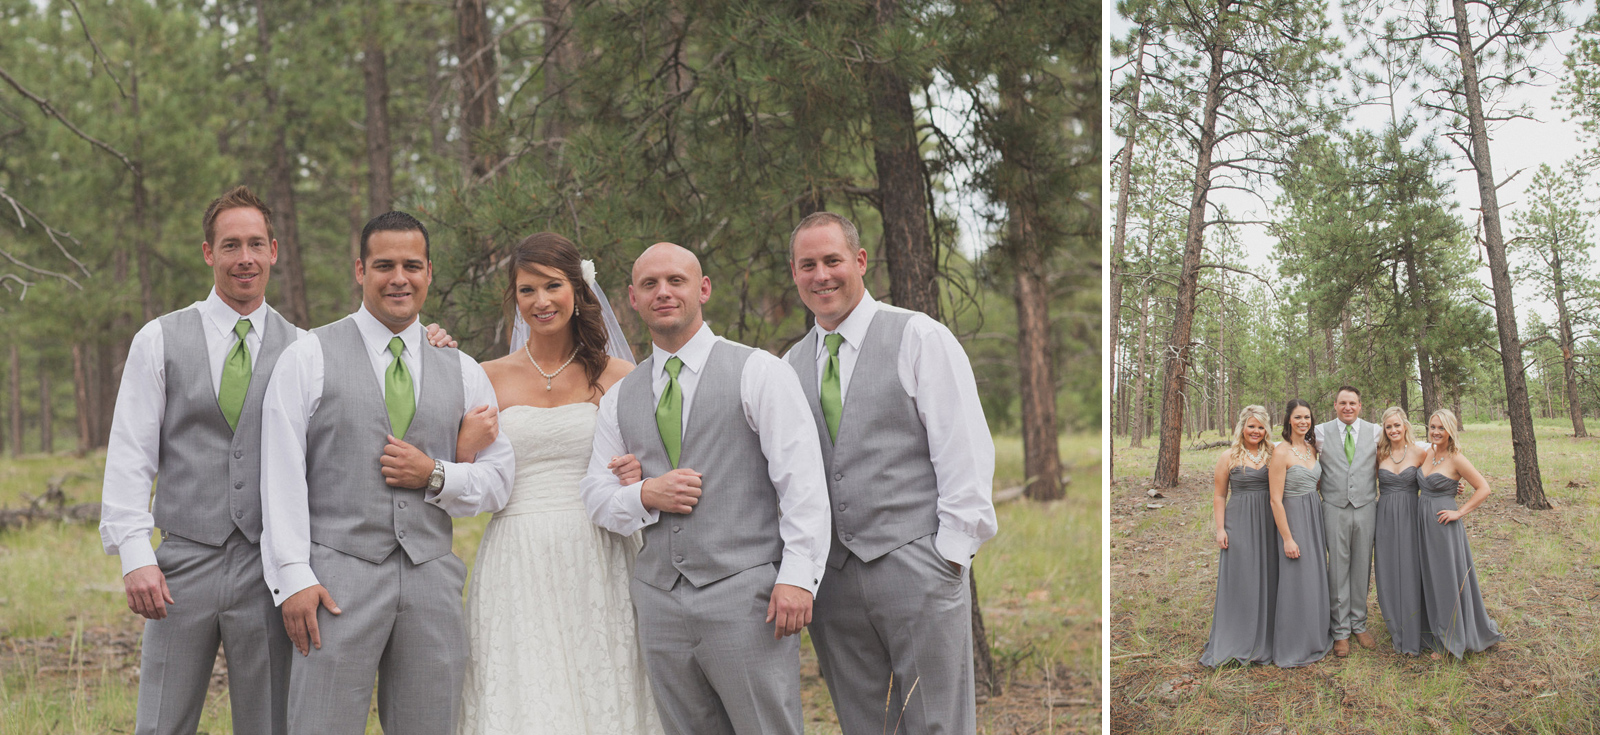 095-groom-wedding-cabin-woods-forest-pictures-photos-dress-photography-portraits-wedding-party-party